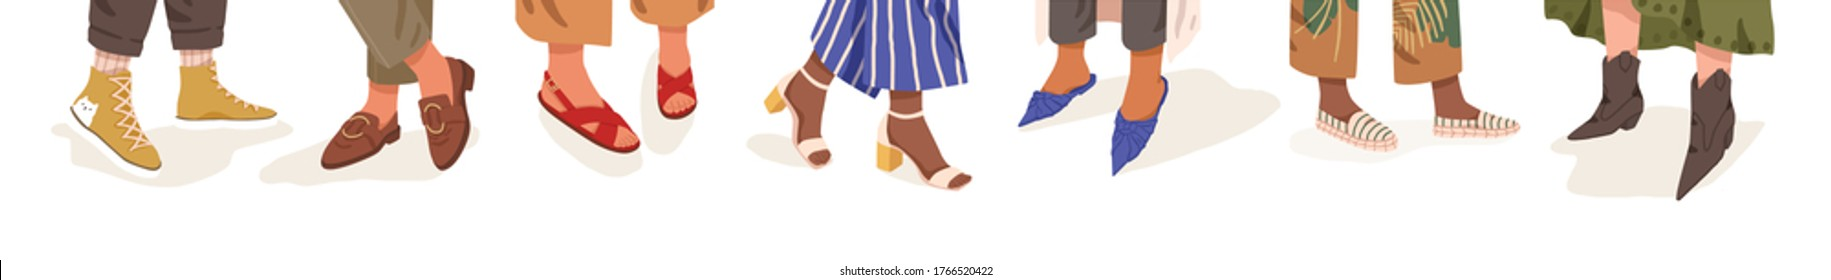 Collection of trendy shoes on diverse female legs vector flat illustration. Bundle of colorful boots on different woman foot isolated on white. Classy seasonal footwear in boho and casual style